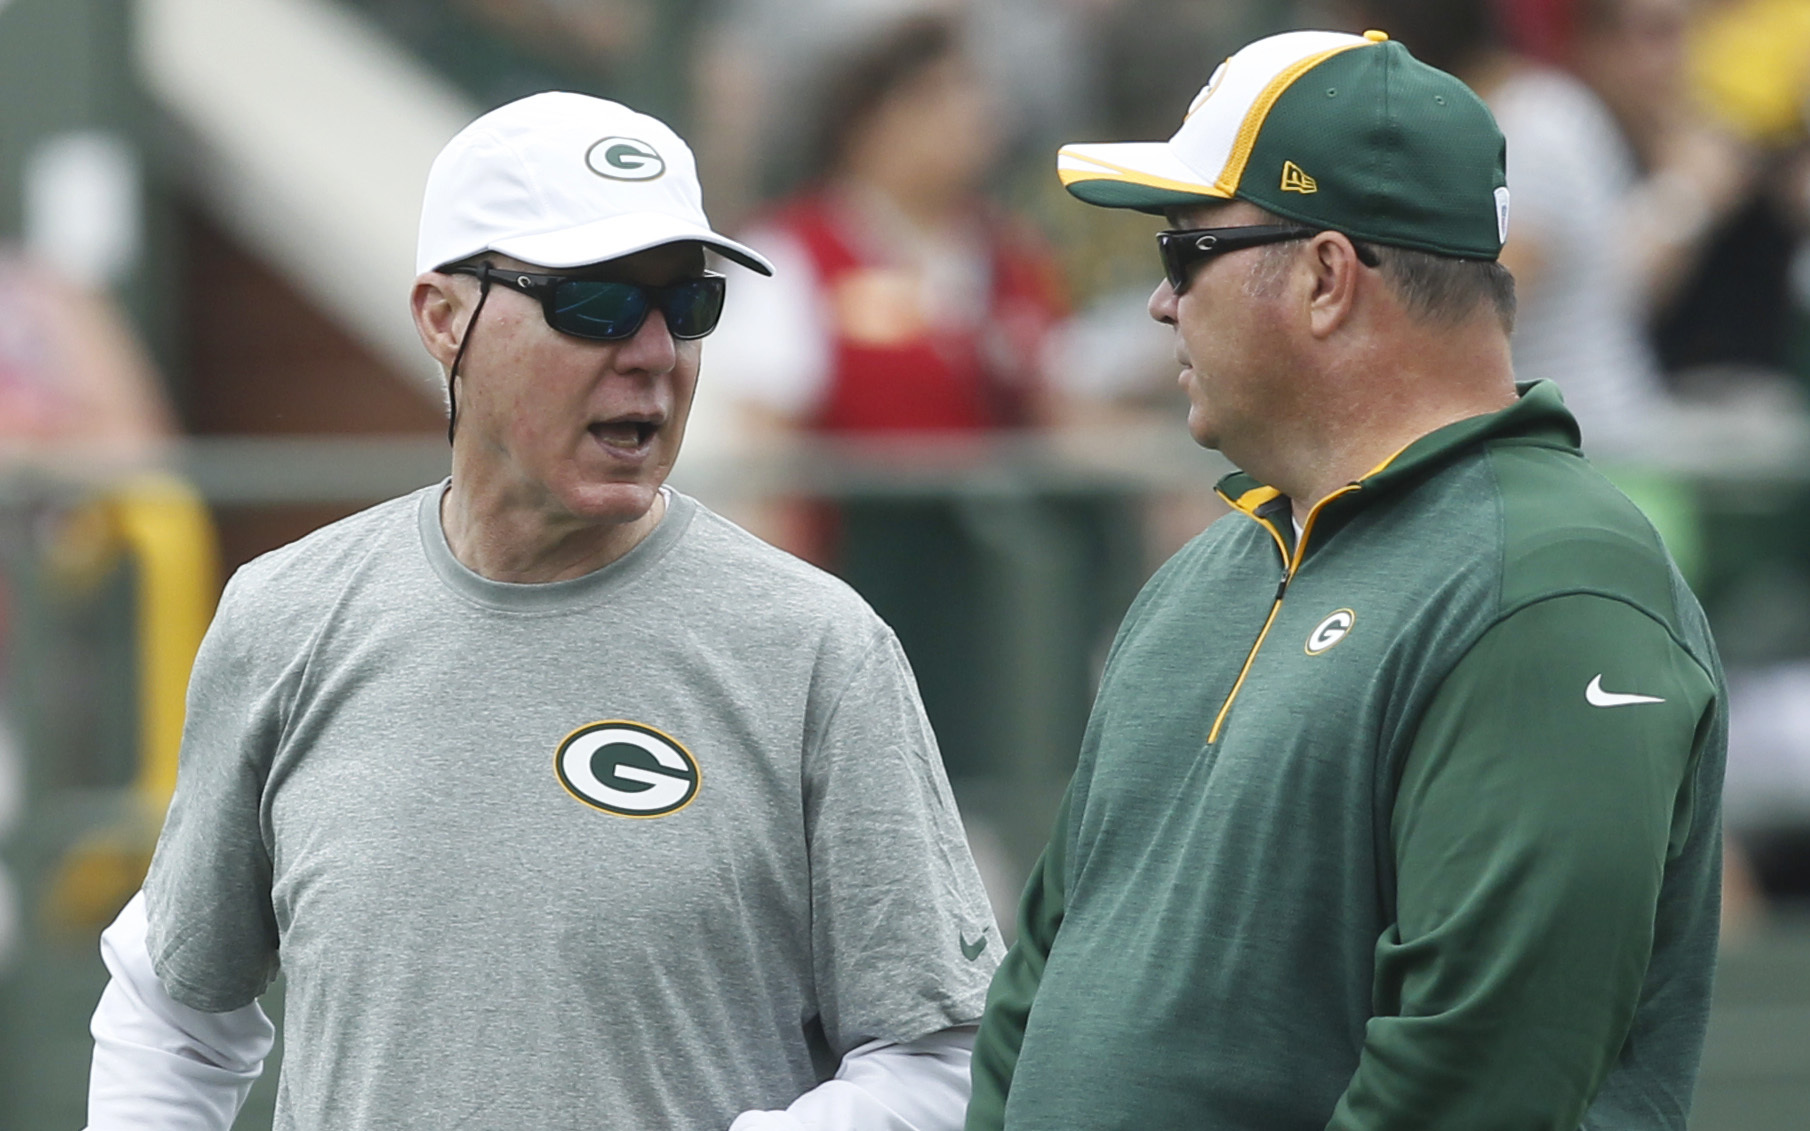 Green Bay Packers general manager Ted Thompson (left) and head coach Mike McCarthy are shown during the first day of training camp Saturday, July 26, 2014 in Green Bay, Wis.  MARK HOFFMAN/MHOFFMAN@JOURNALSENTINEL.COM